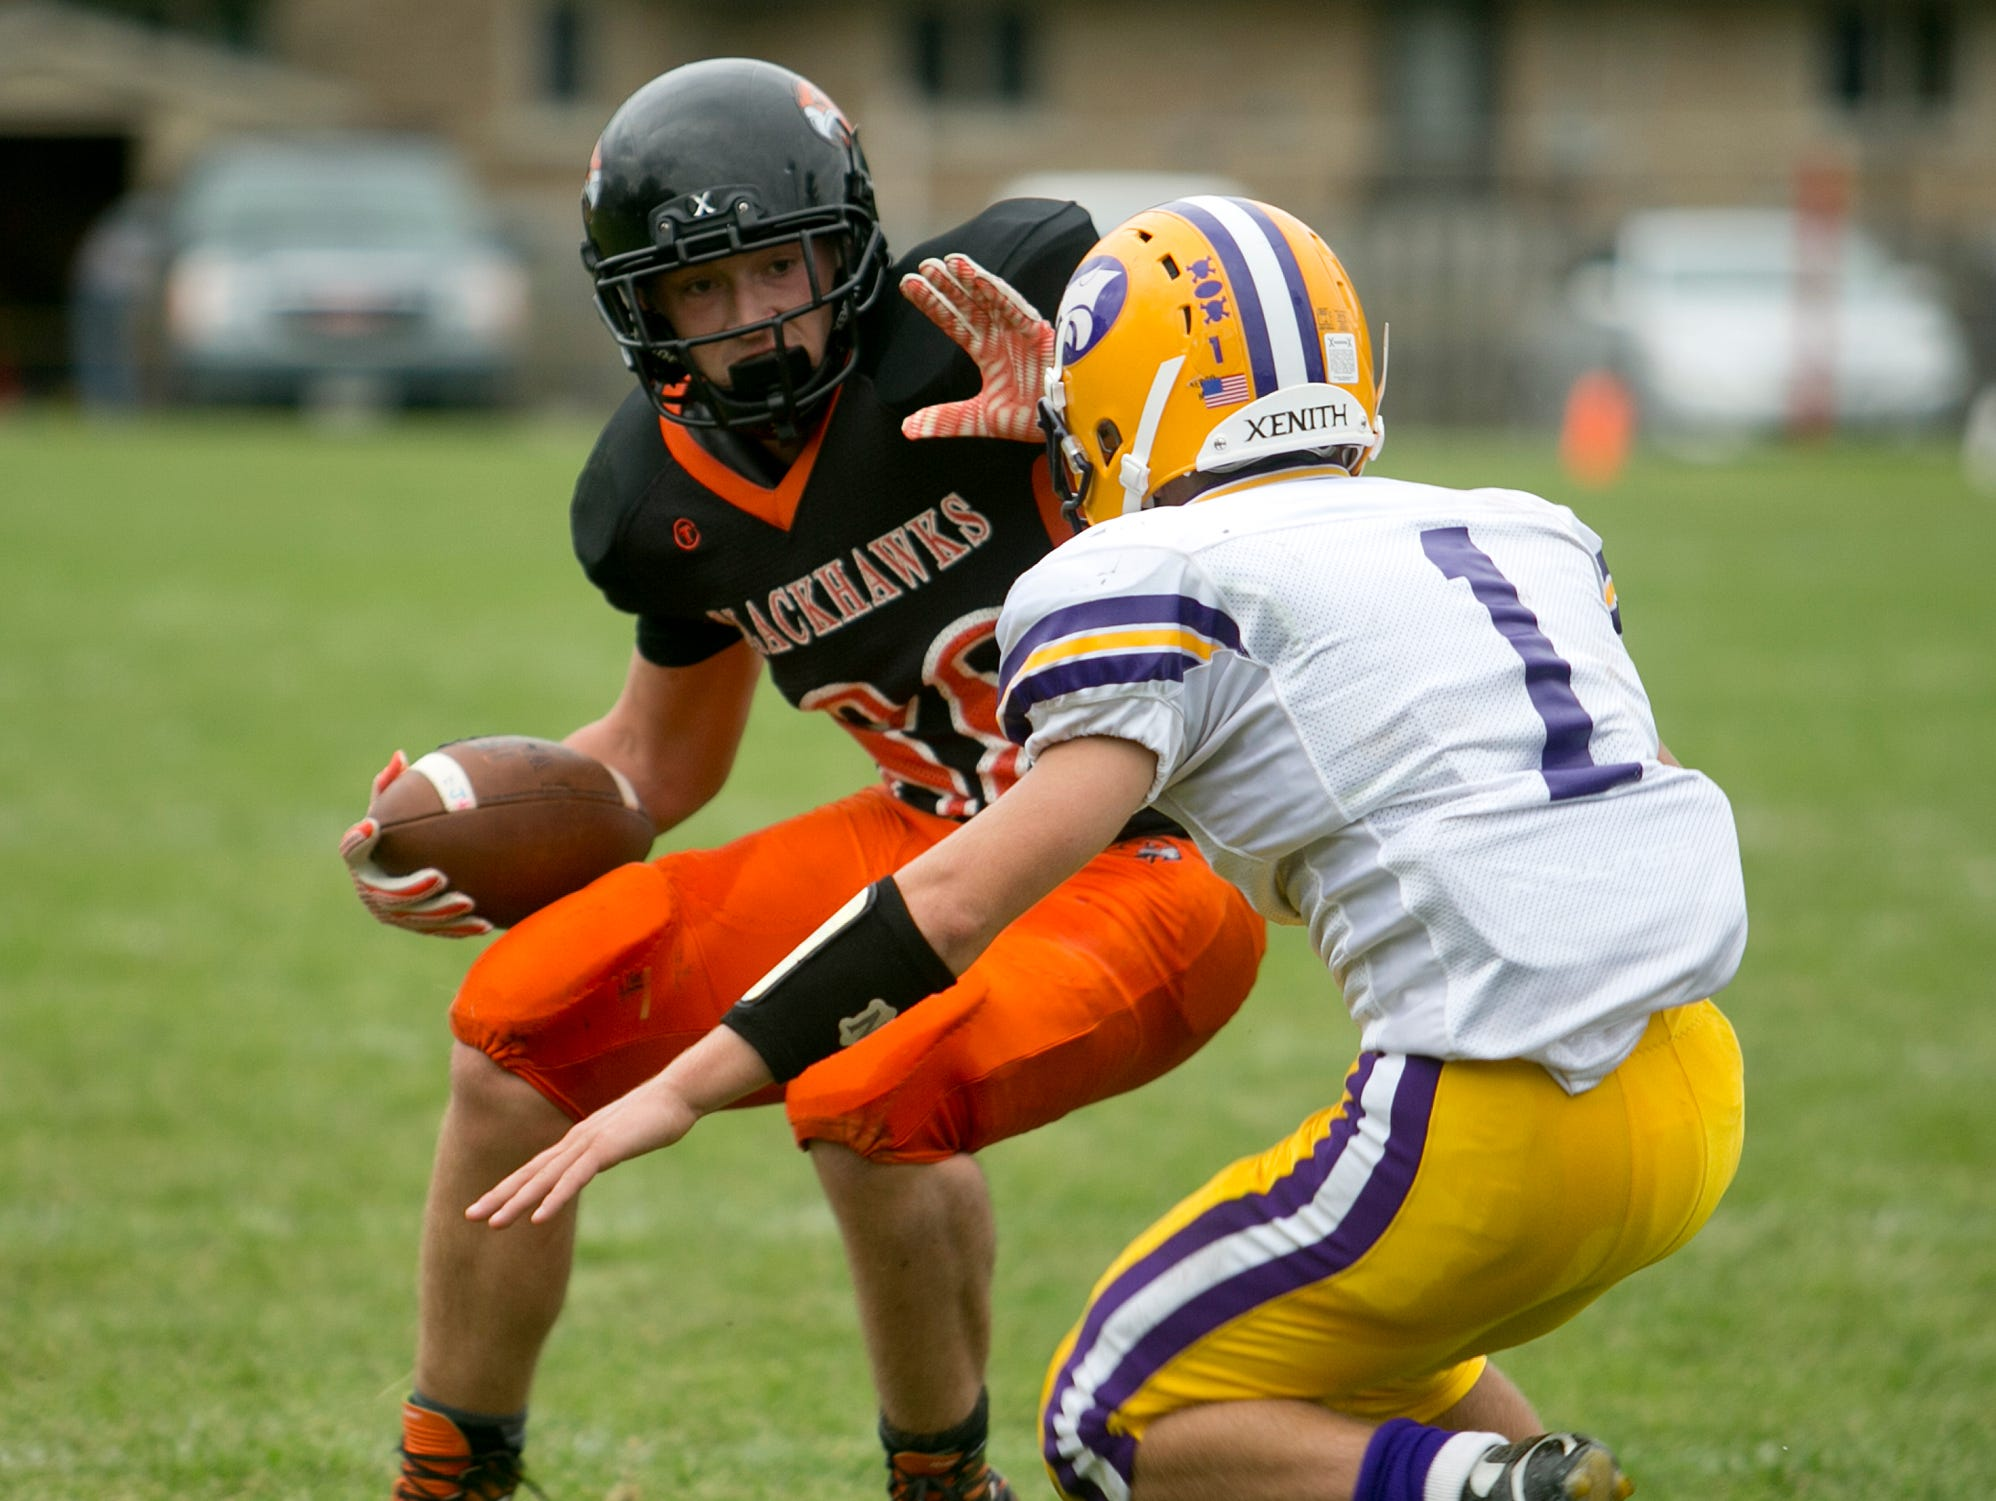 Port Edwards senior Ethan Saylor switched from receiver to tailback for the 2015 season.